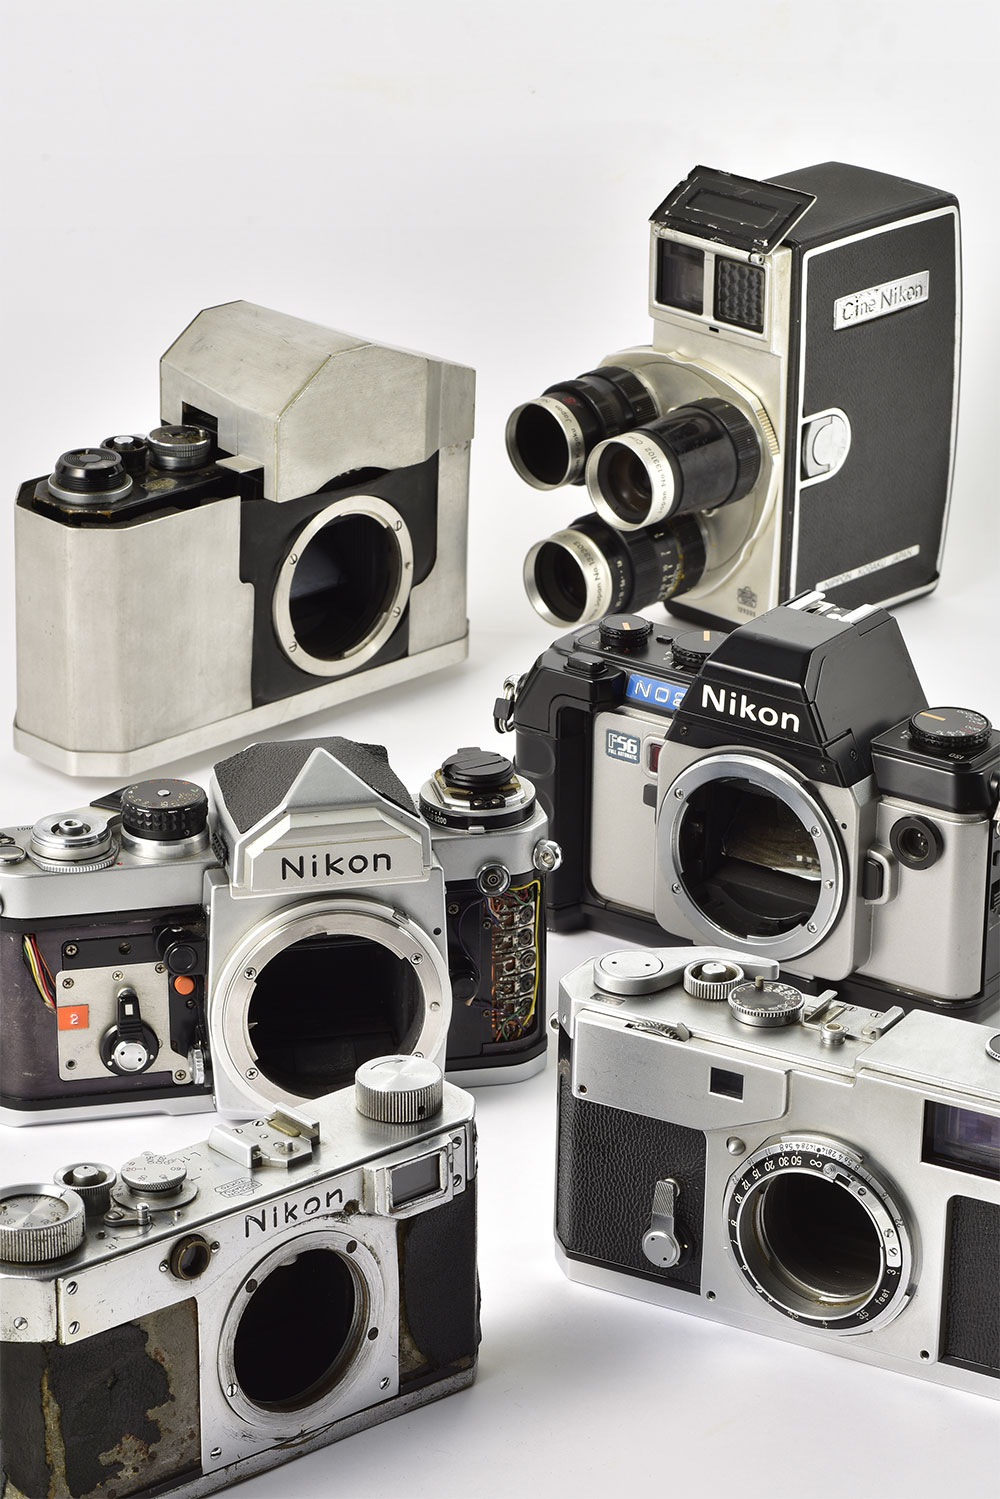 The Nikon Museum will hold a 100th anniversary exhibition on prototype cameras